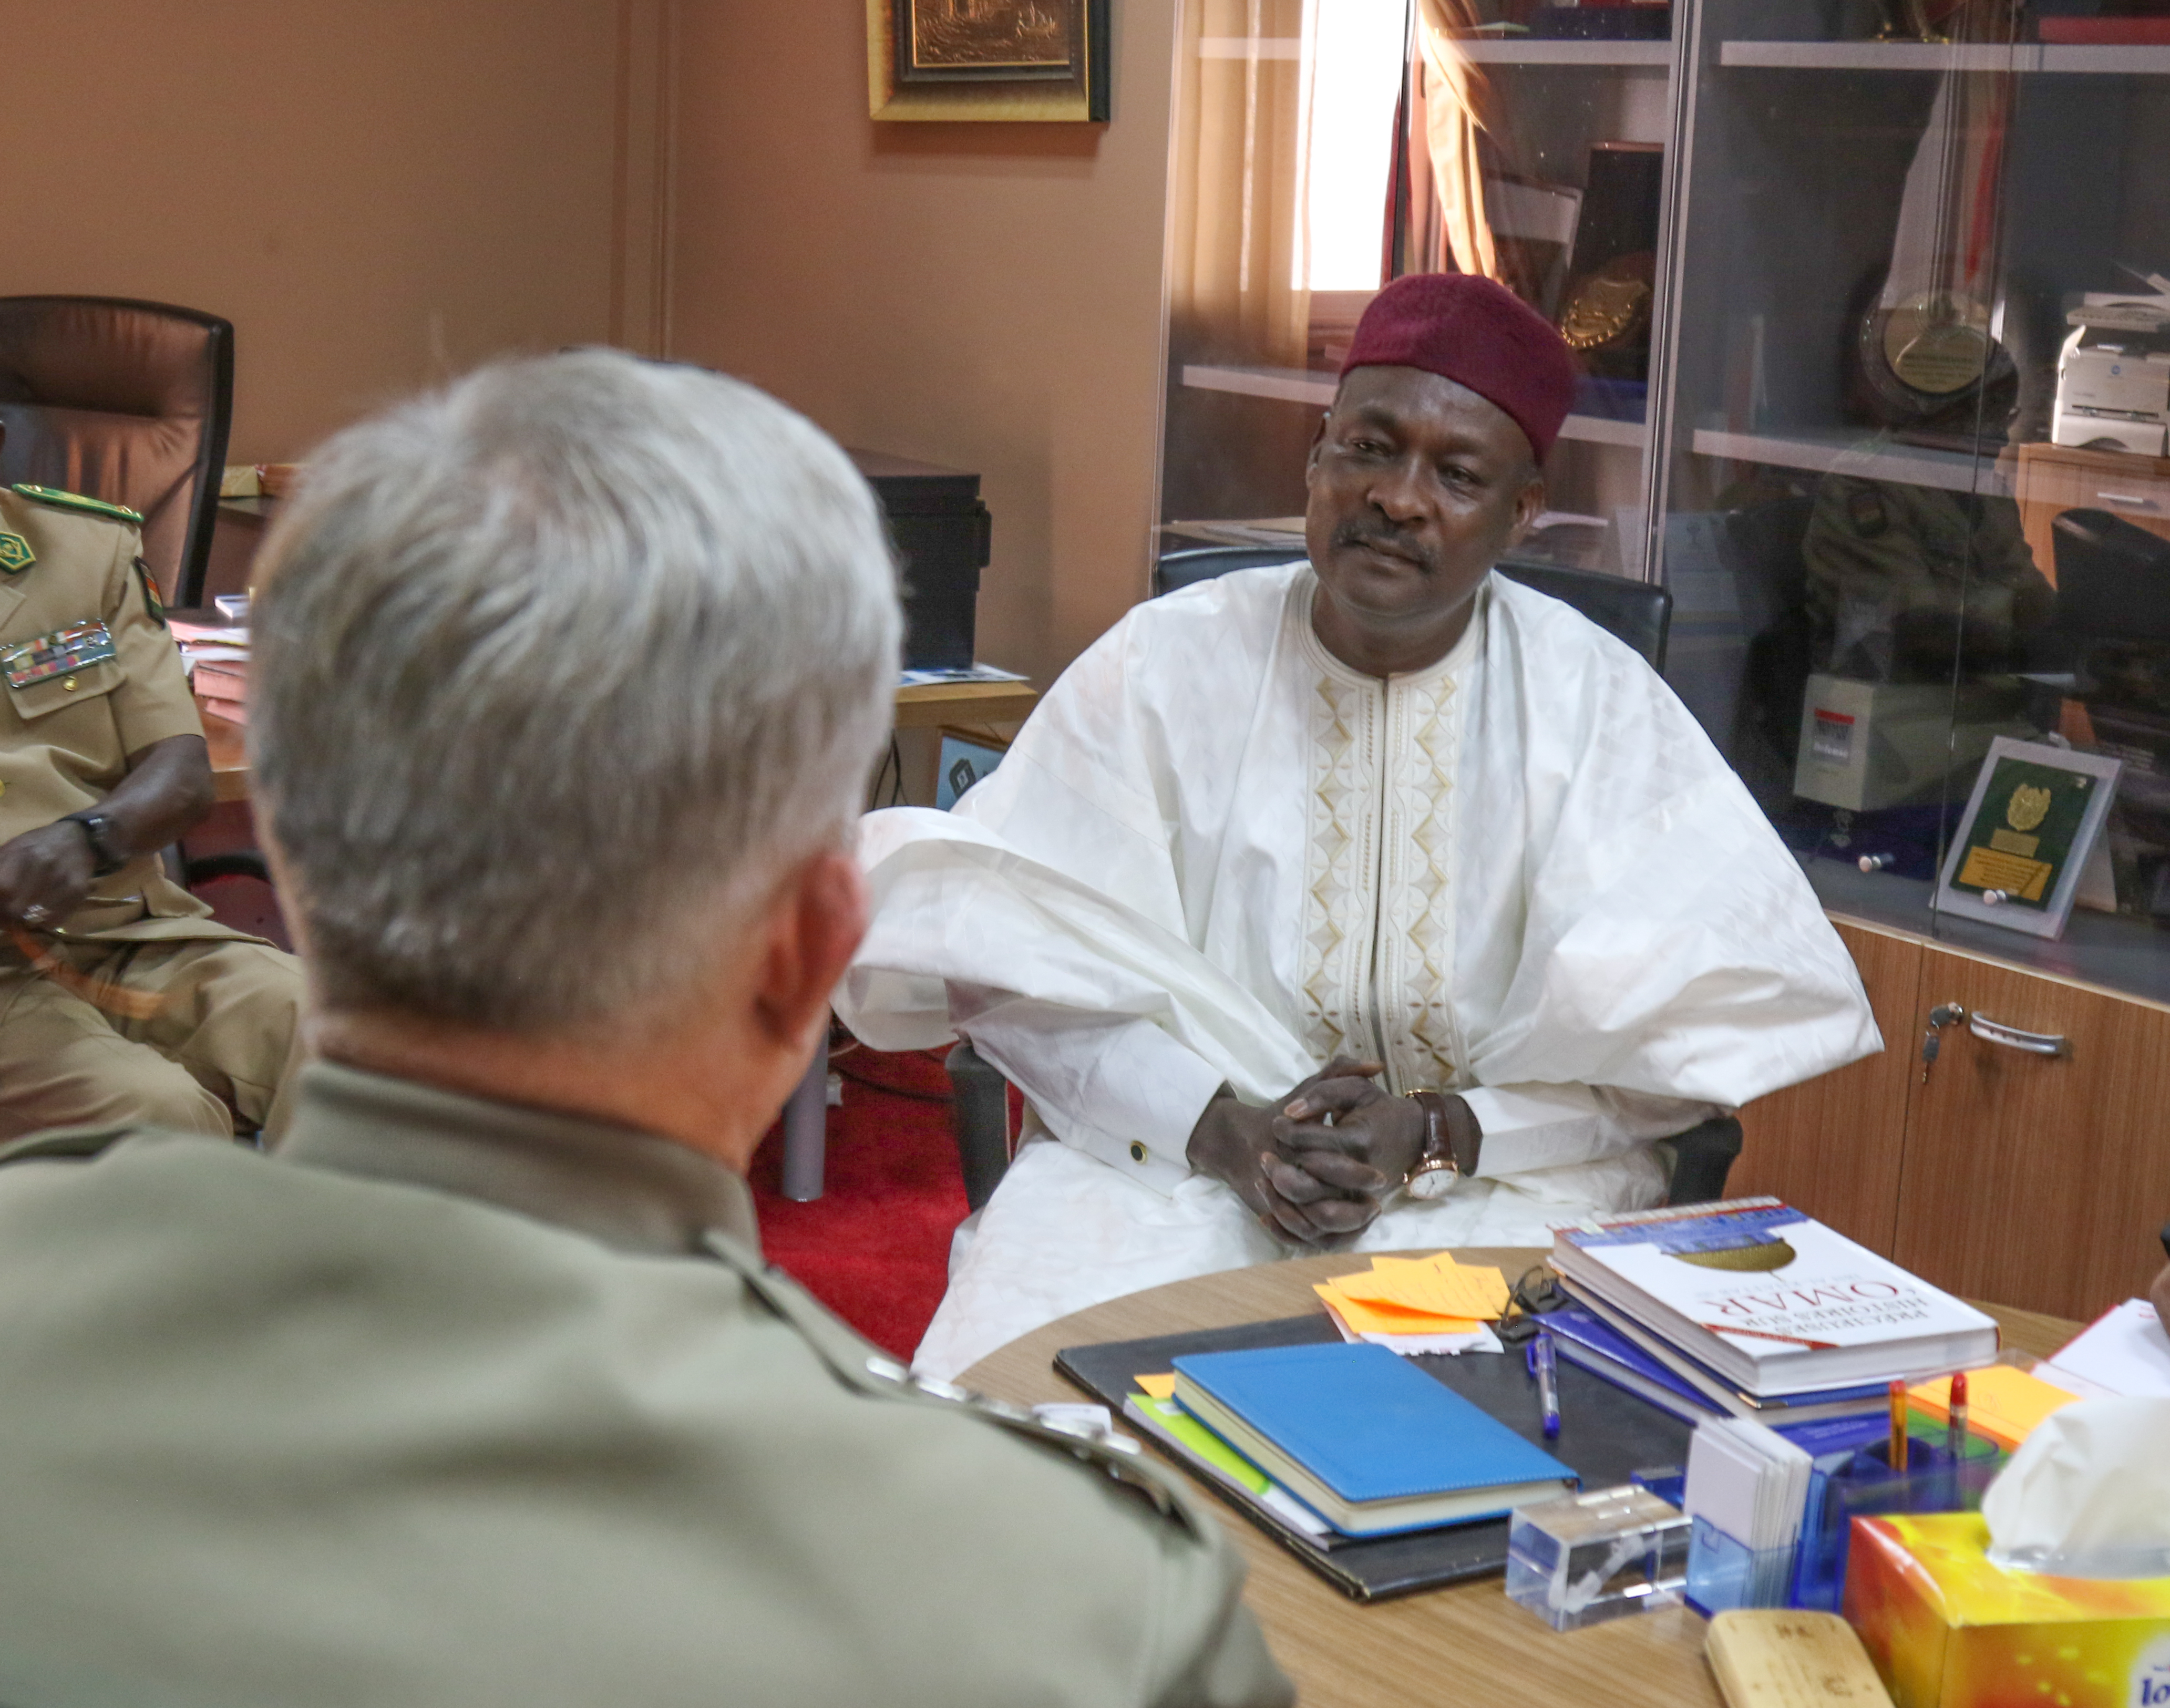 U.S. Marine Corps Gen. Thomas D. Waldhauser, commander, U.S. Africa Command, and Nigerien Minister of Defense Kalla Moutari speak during a meeting Jan. 24, 2018 in Niamey, Niger.